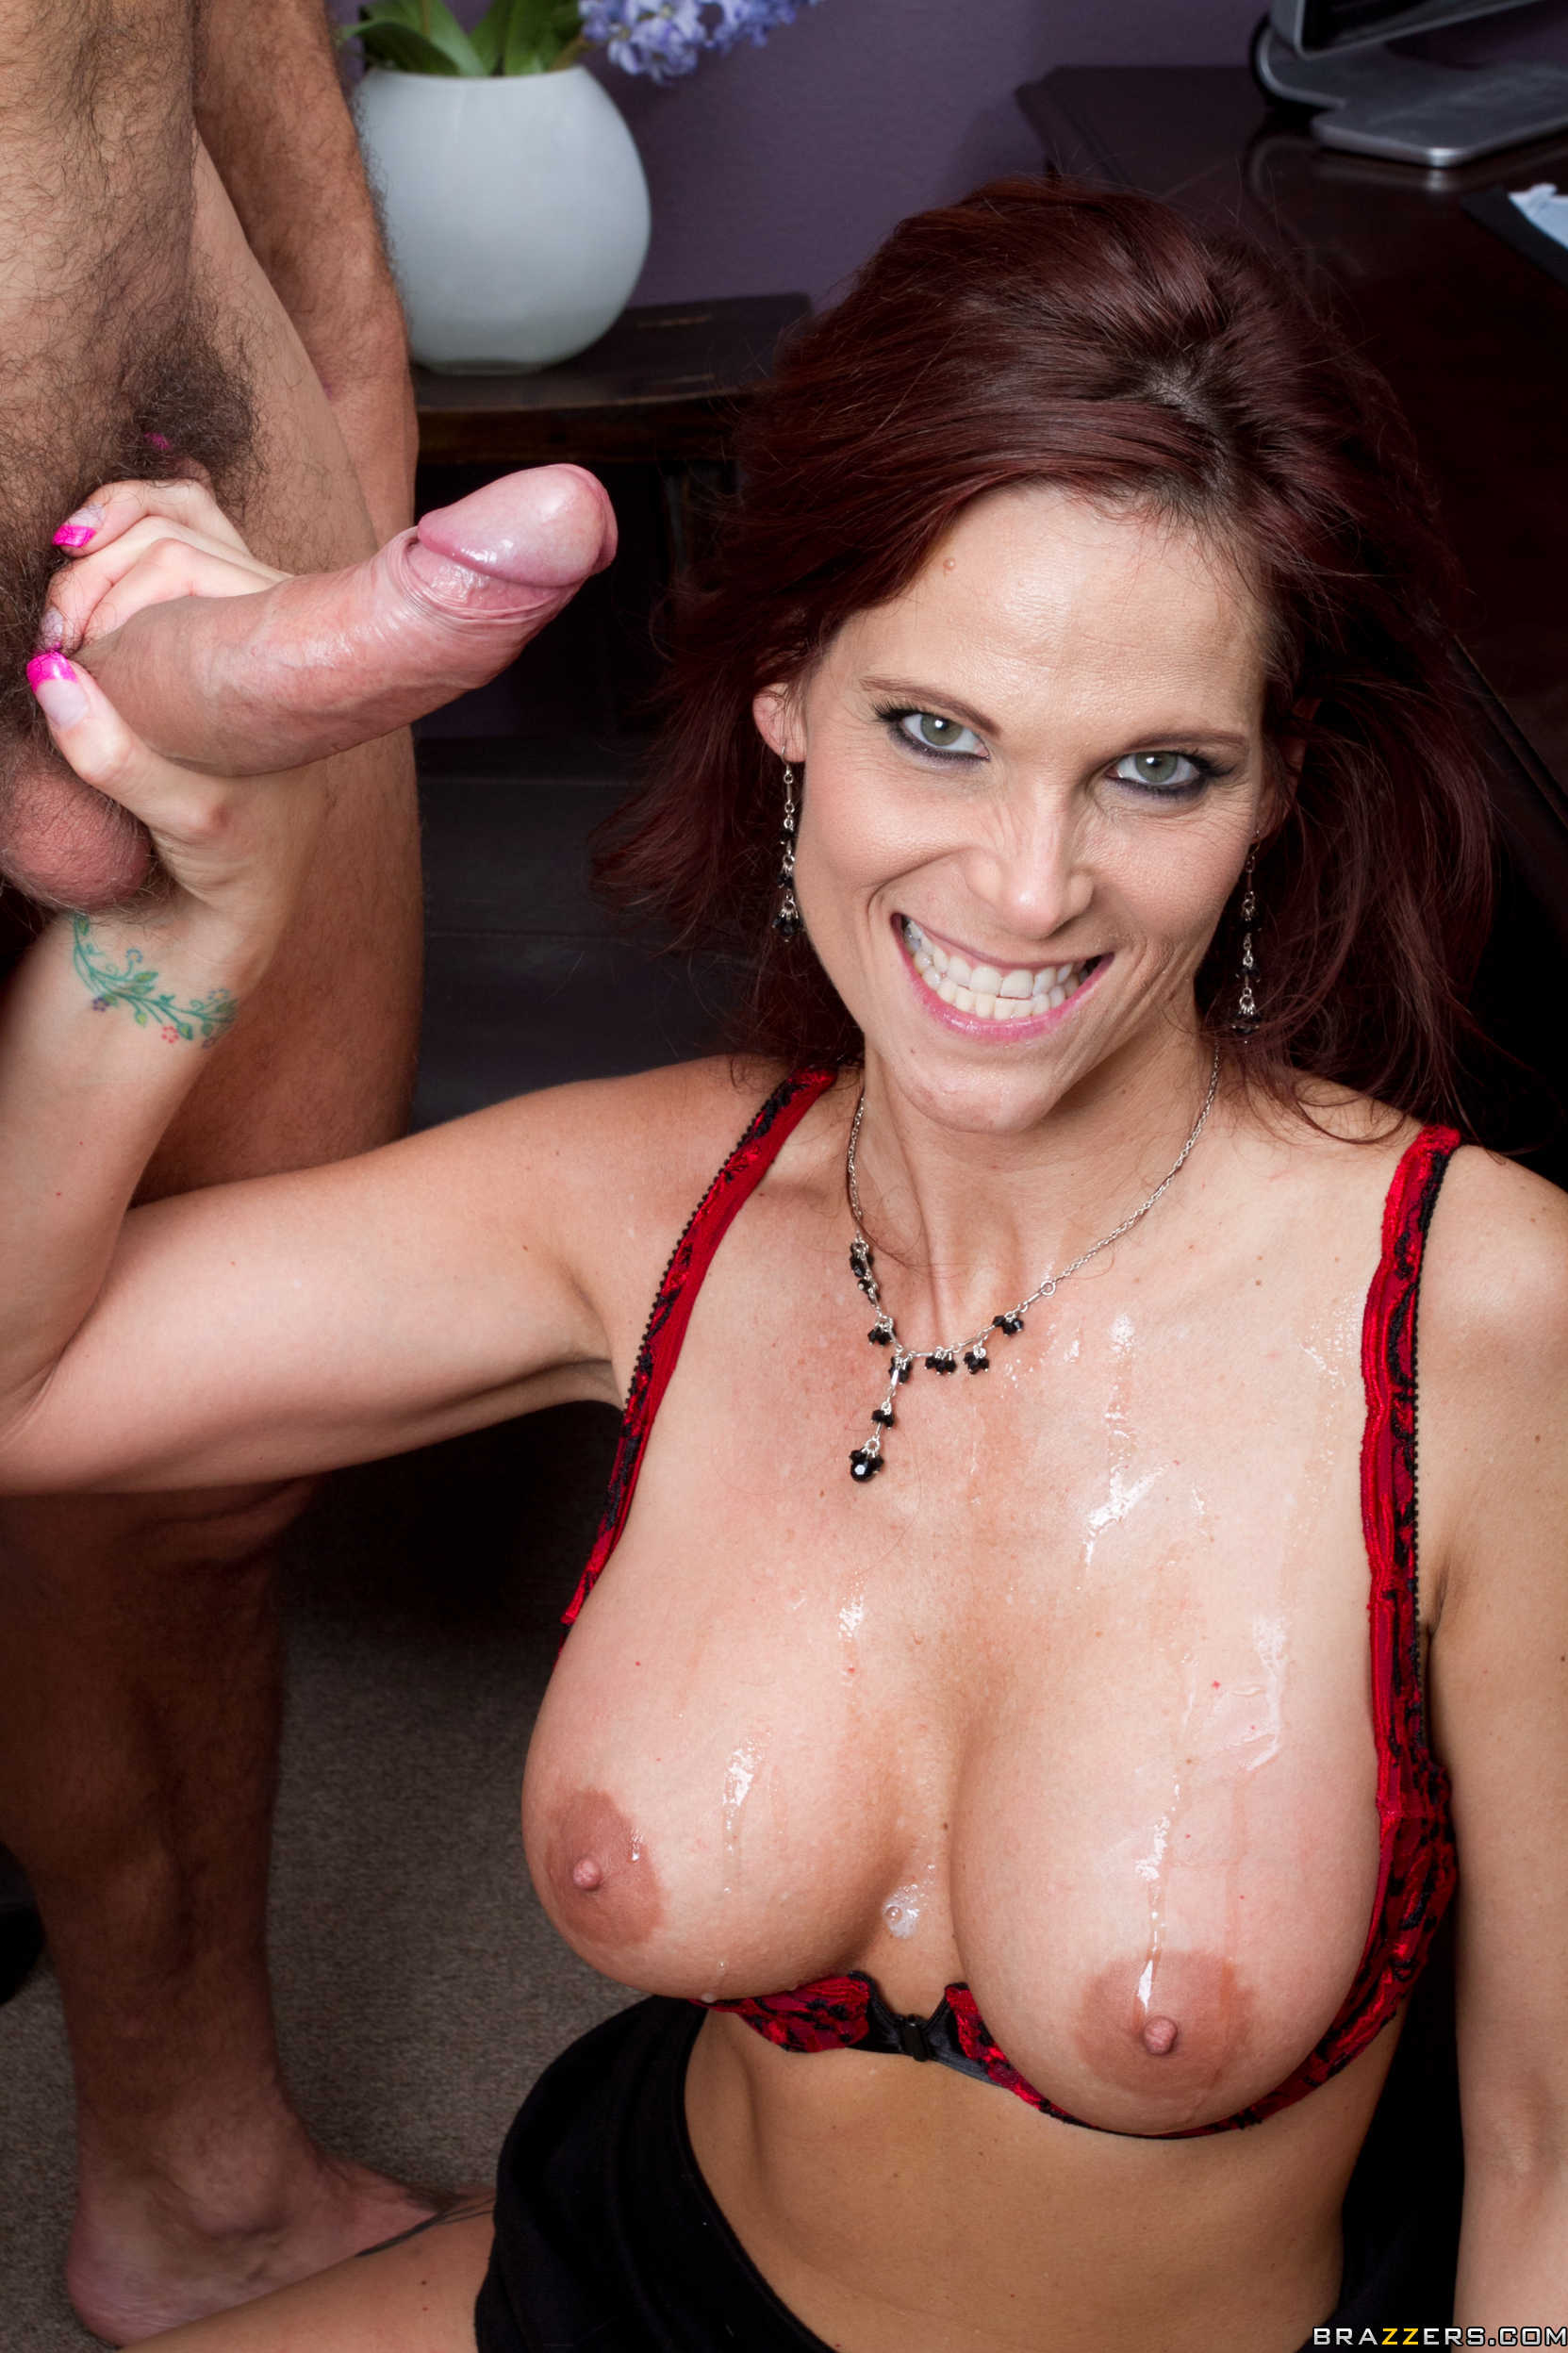 Incredible Redhead Anal &fearsome Creampie Casting